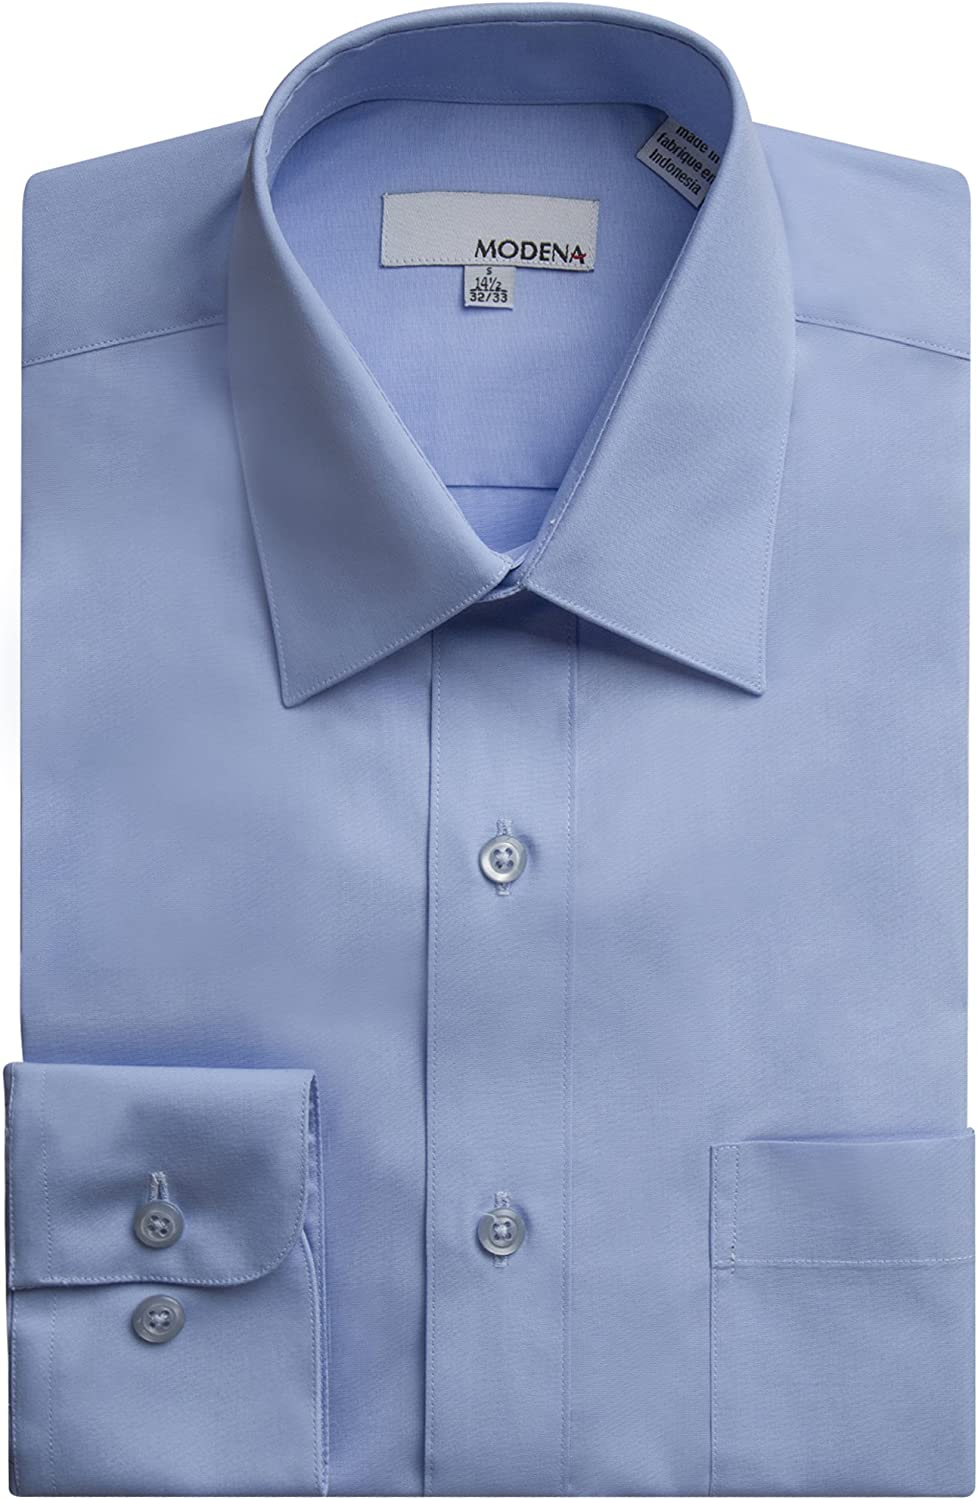 Slim All Sizes Fit Long Sleeve Solid Dress Shirt Colors Modena Men/'s Regular /& Contemporary